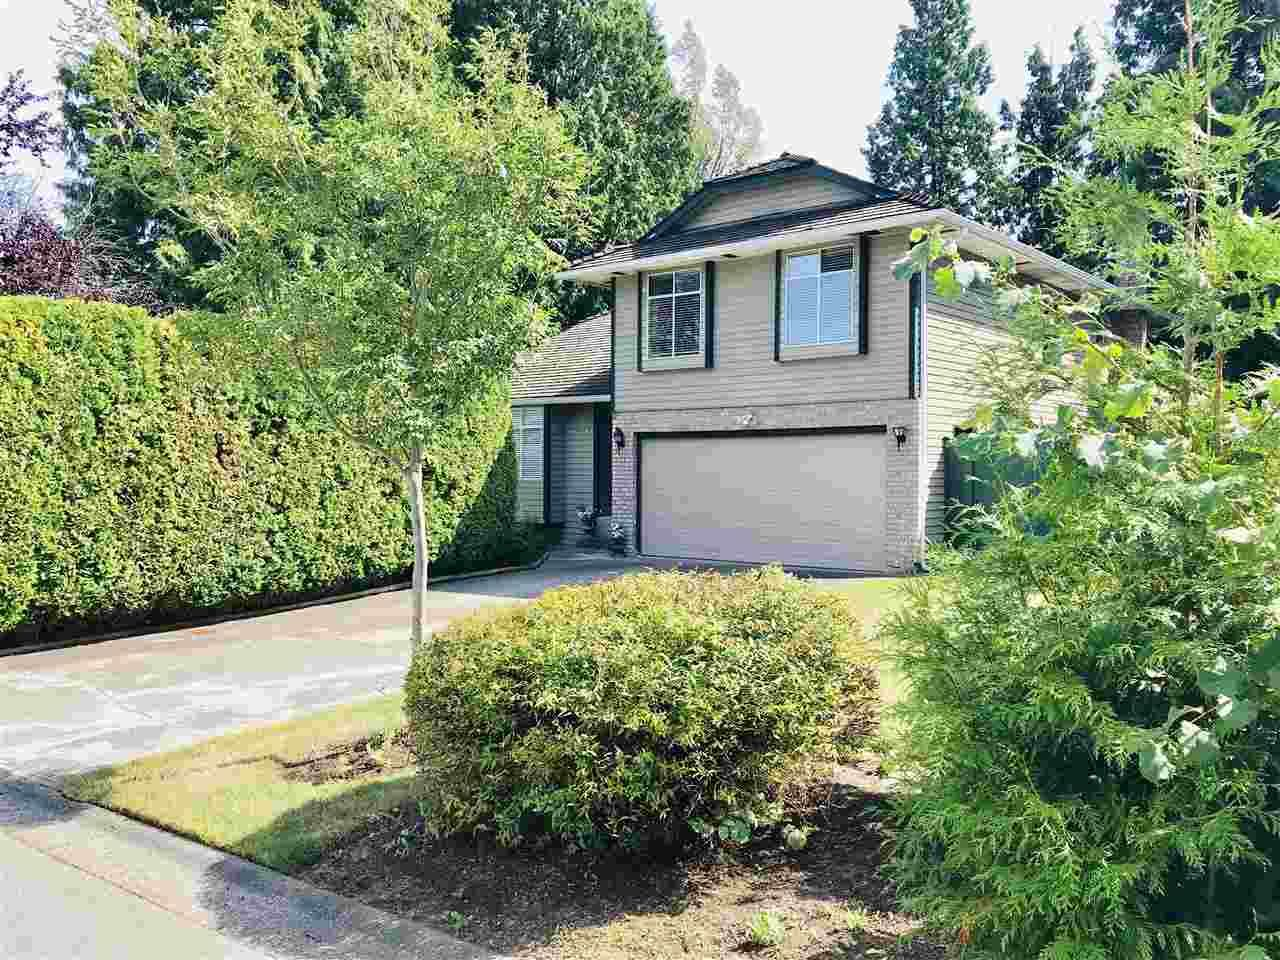 """Main Photo: 16118 12A Avenue in Surrey: King George Corridor House for sale in """"South Meridian"""" (South Surrey White Rock)  : MLS®# R2397694"""